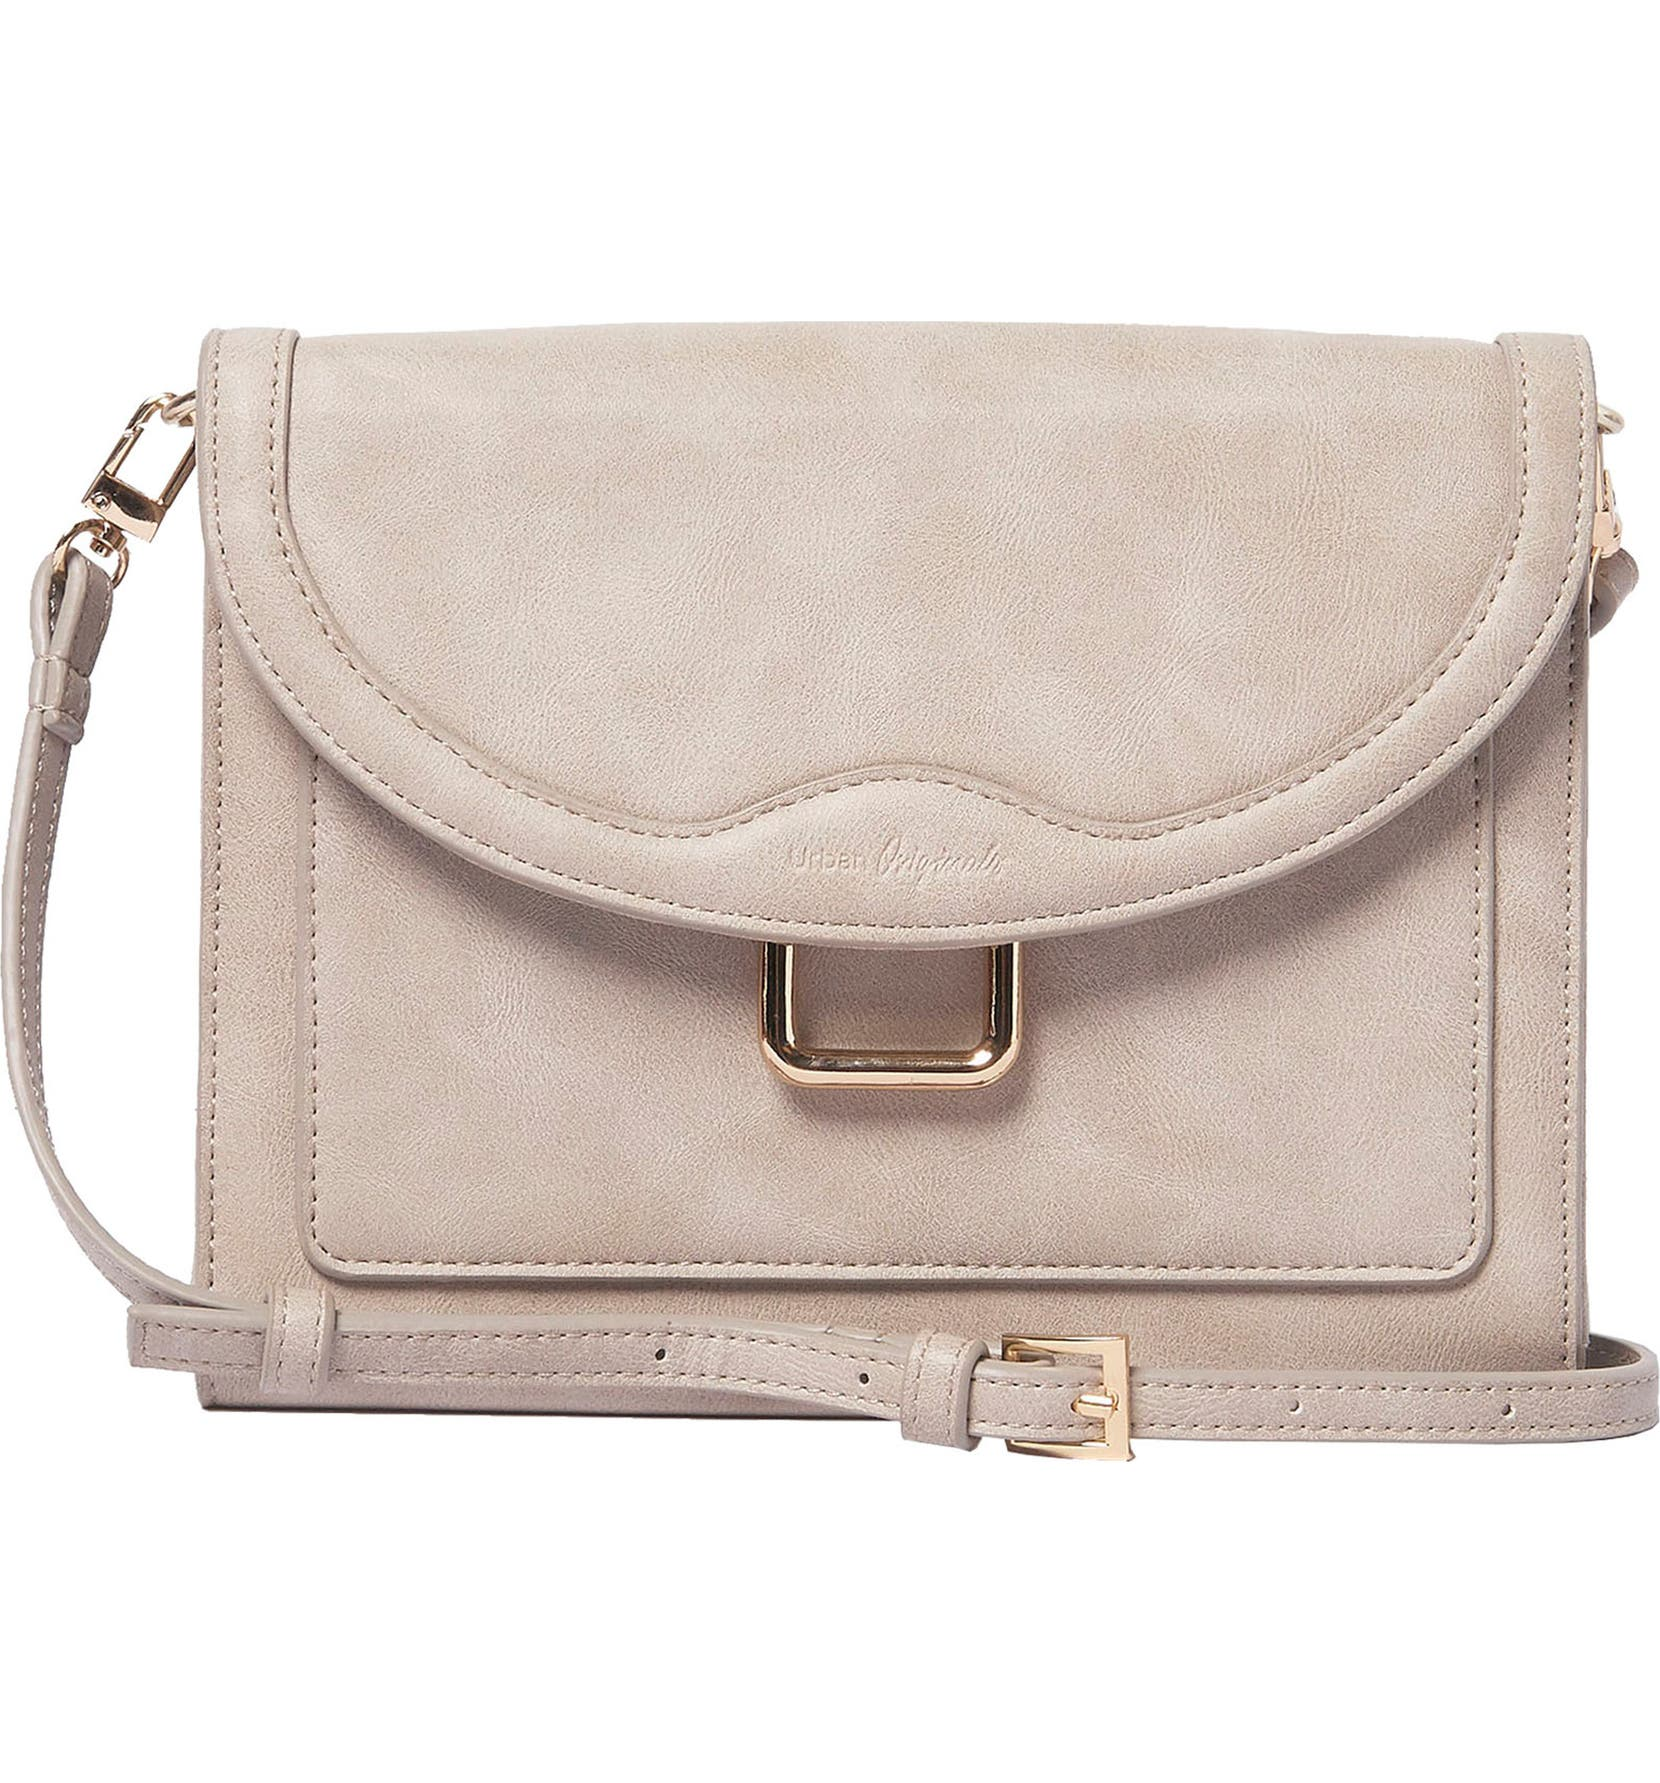 1b288270488 Urban Originals The Edit Vegan Leather Crossbody Bag | Nordstrom